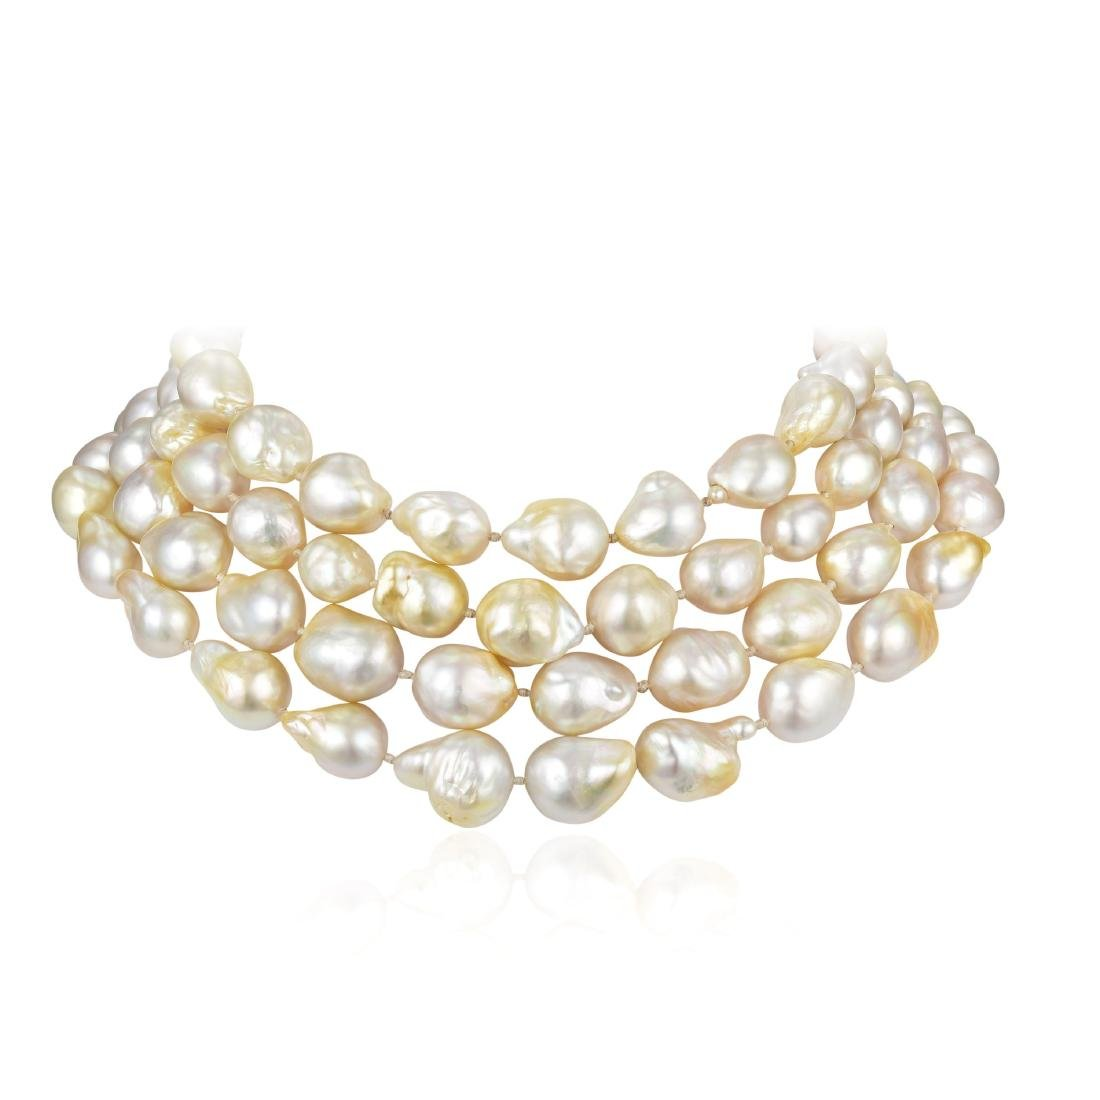 Christopher Walling Cultured Baroque Pearl Necklace